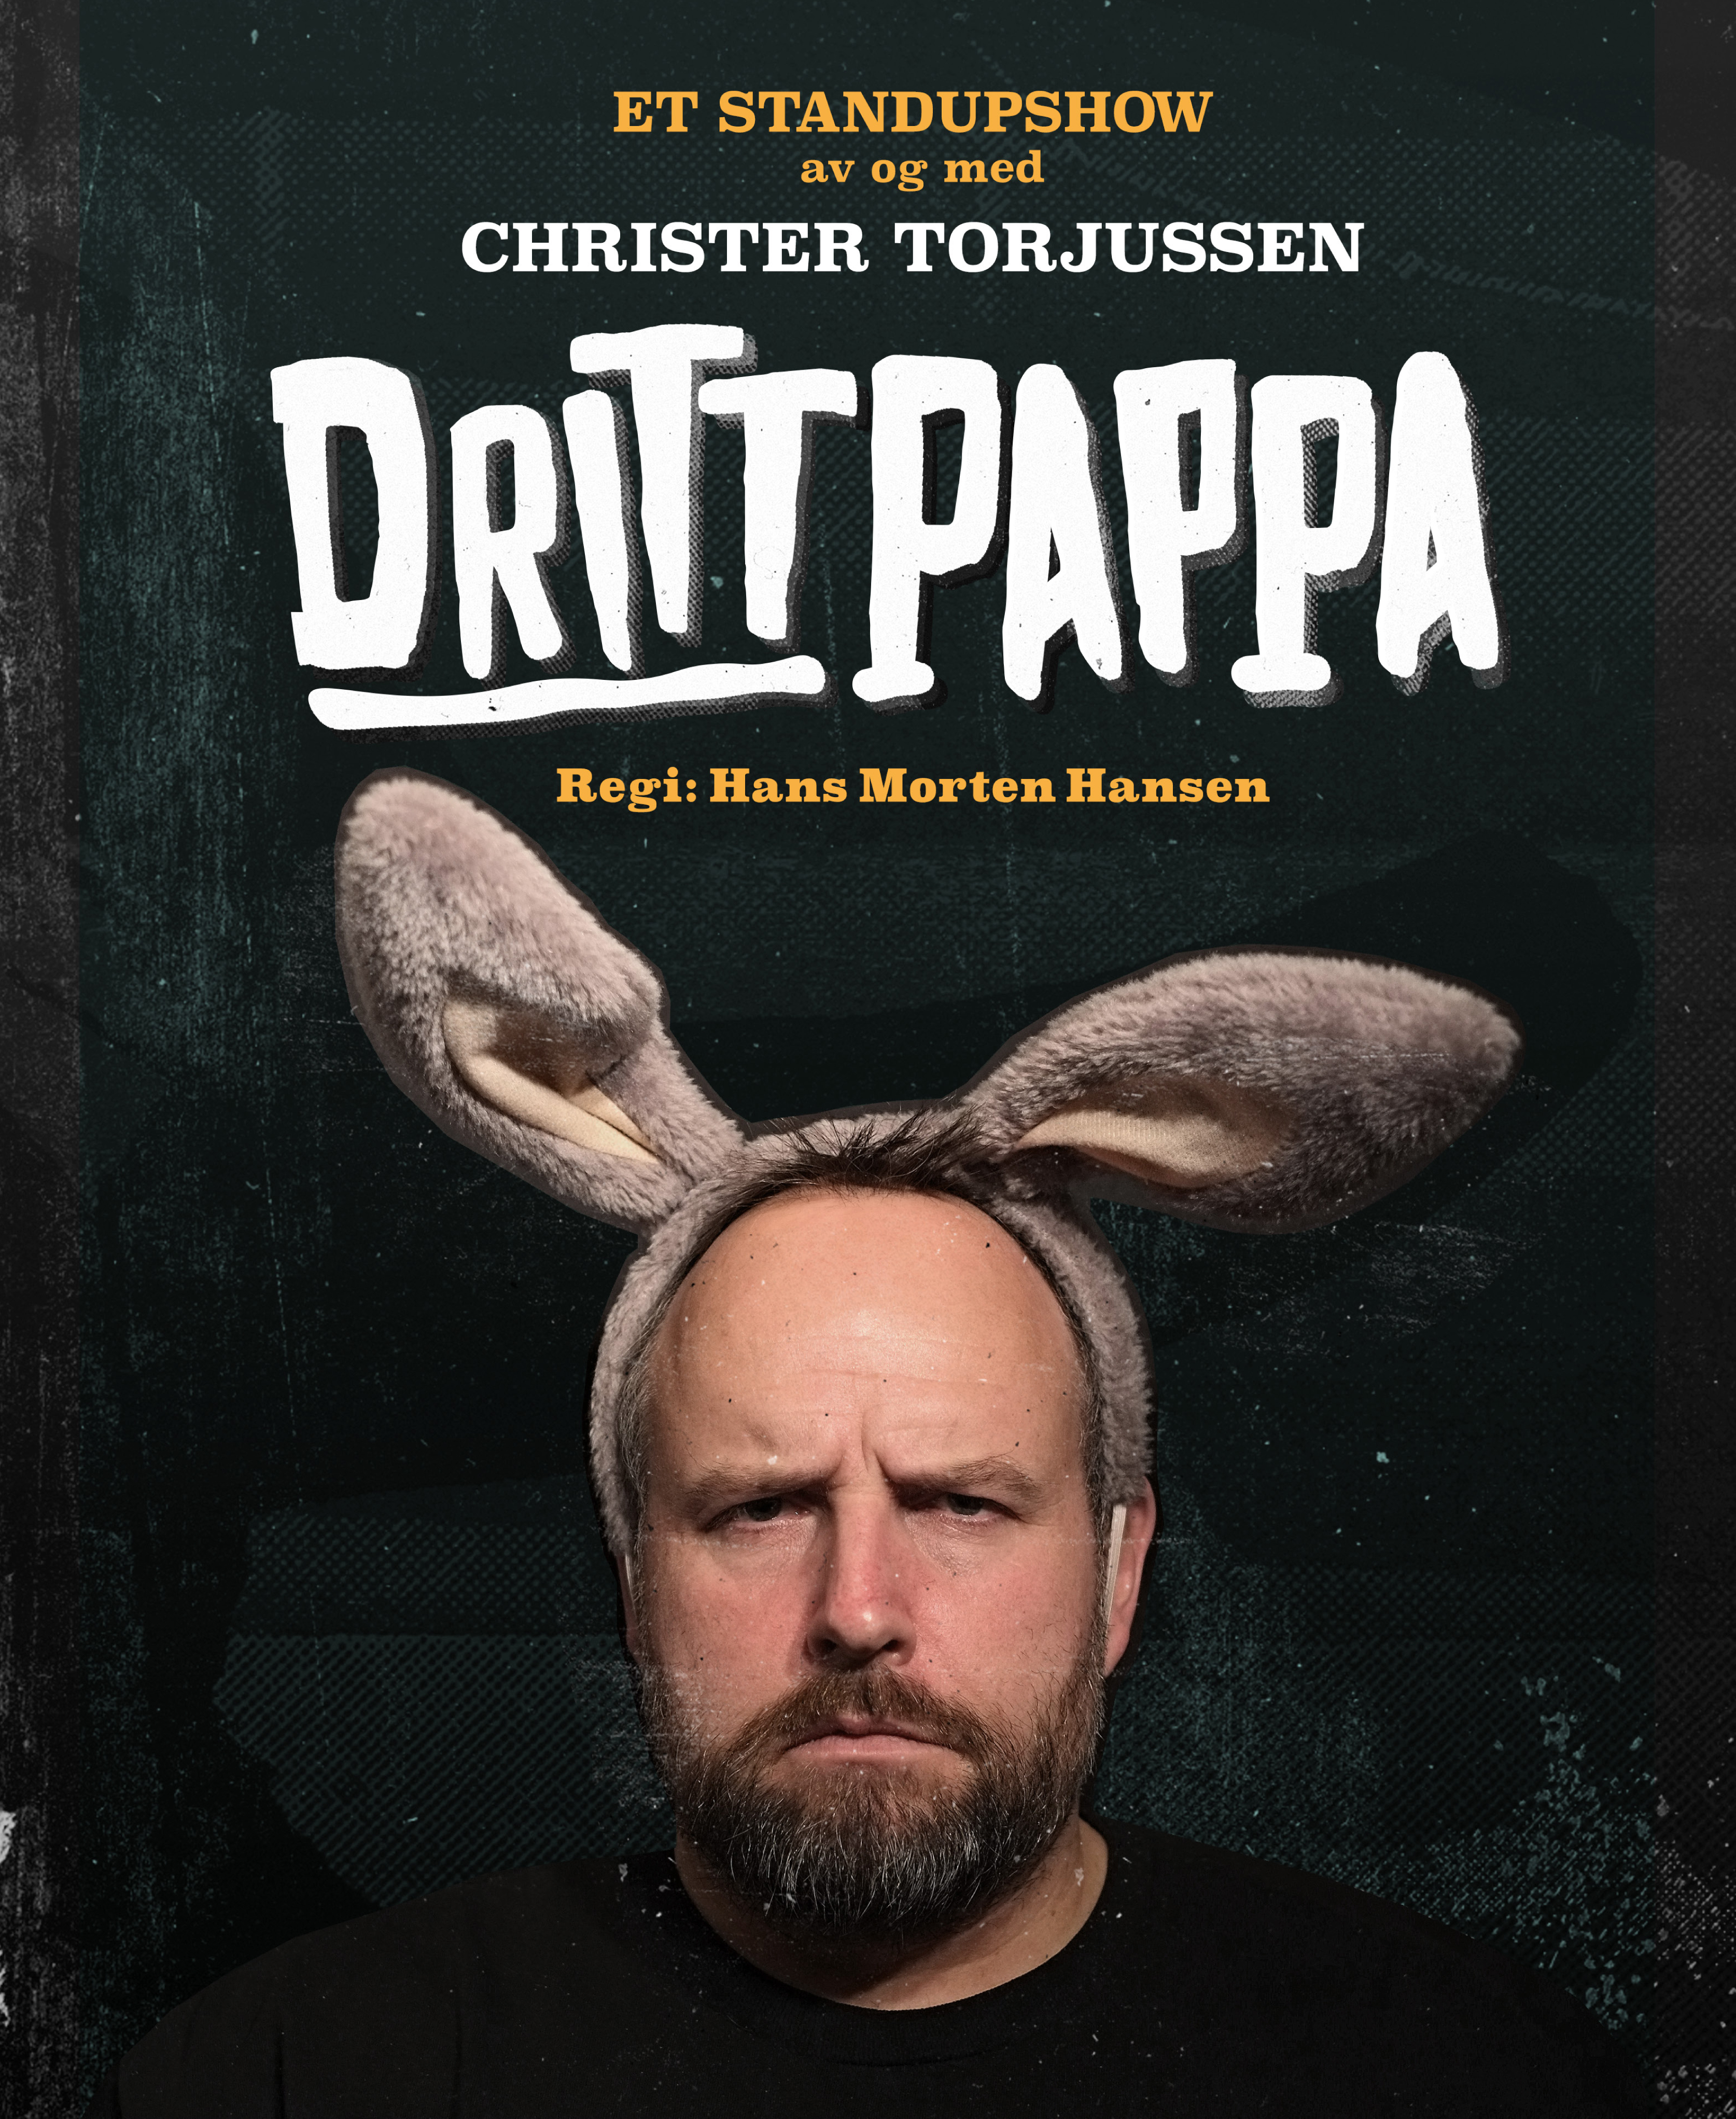 DRITTPAPPA, Stand up!